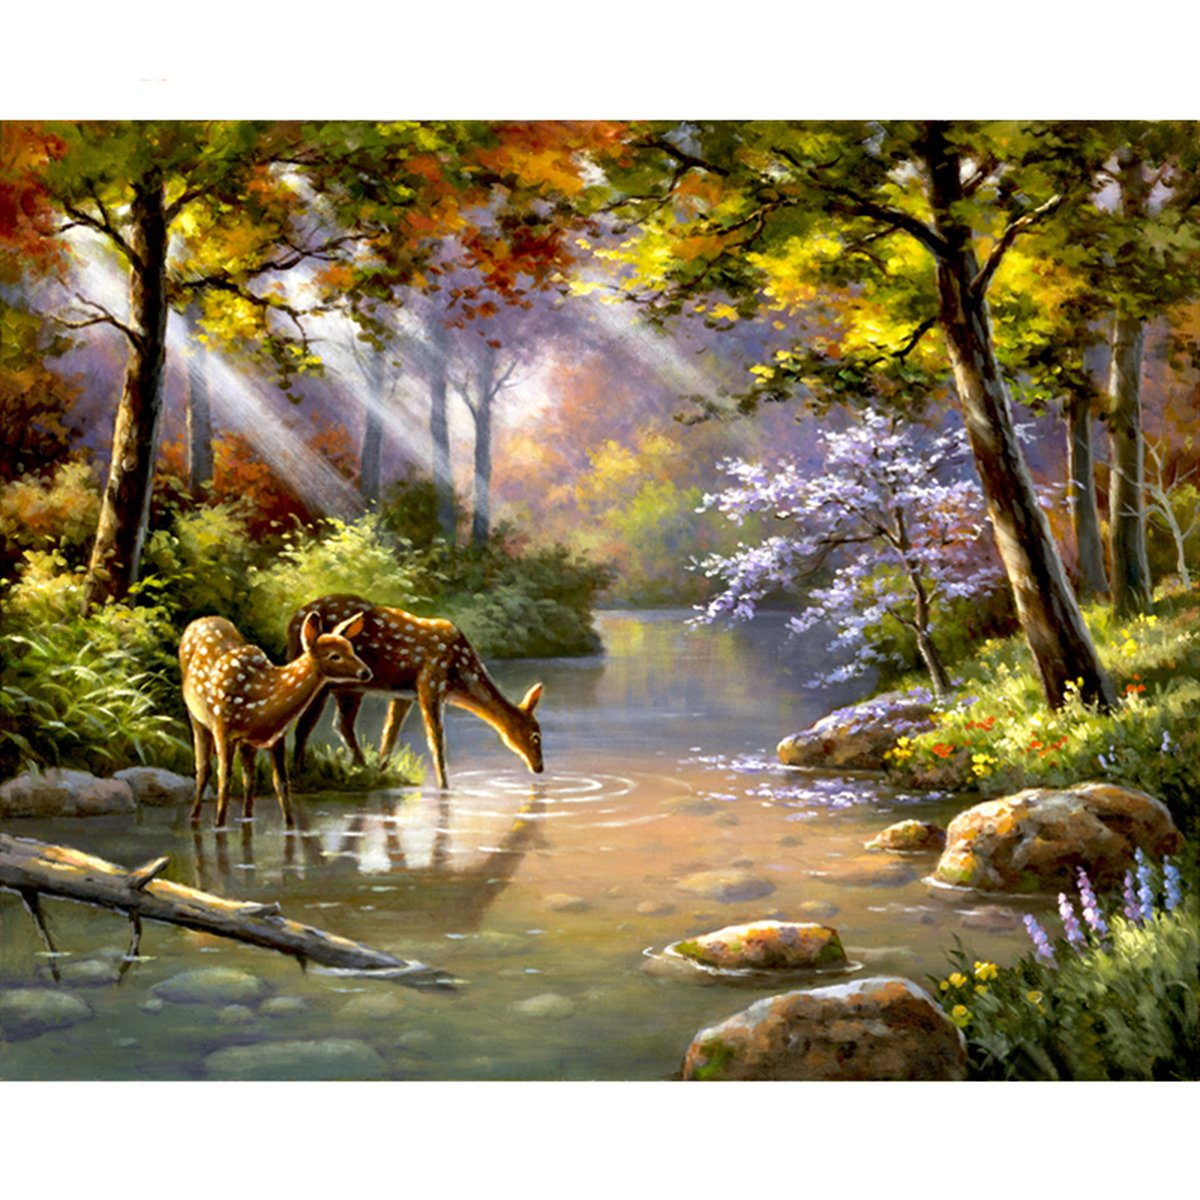 Shukqueen Diy Oil Painting, Adult's Paint by Number Kits, Acrylic Painting Wild Deer 16X20 Inch (Framed Canvas)